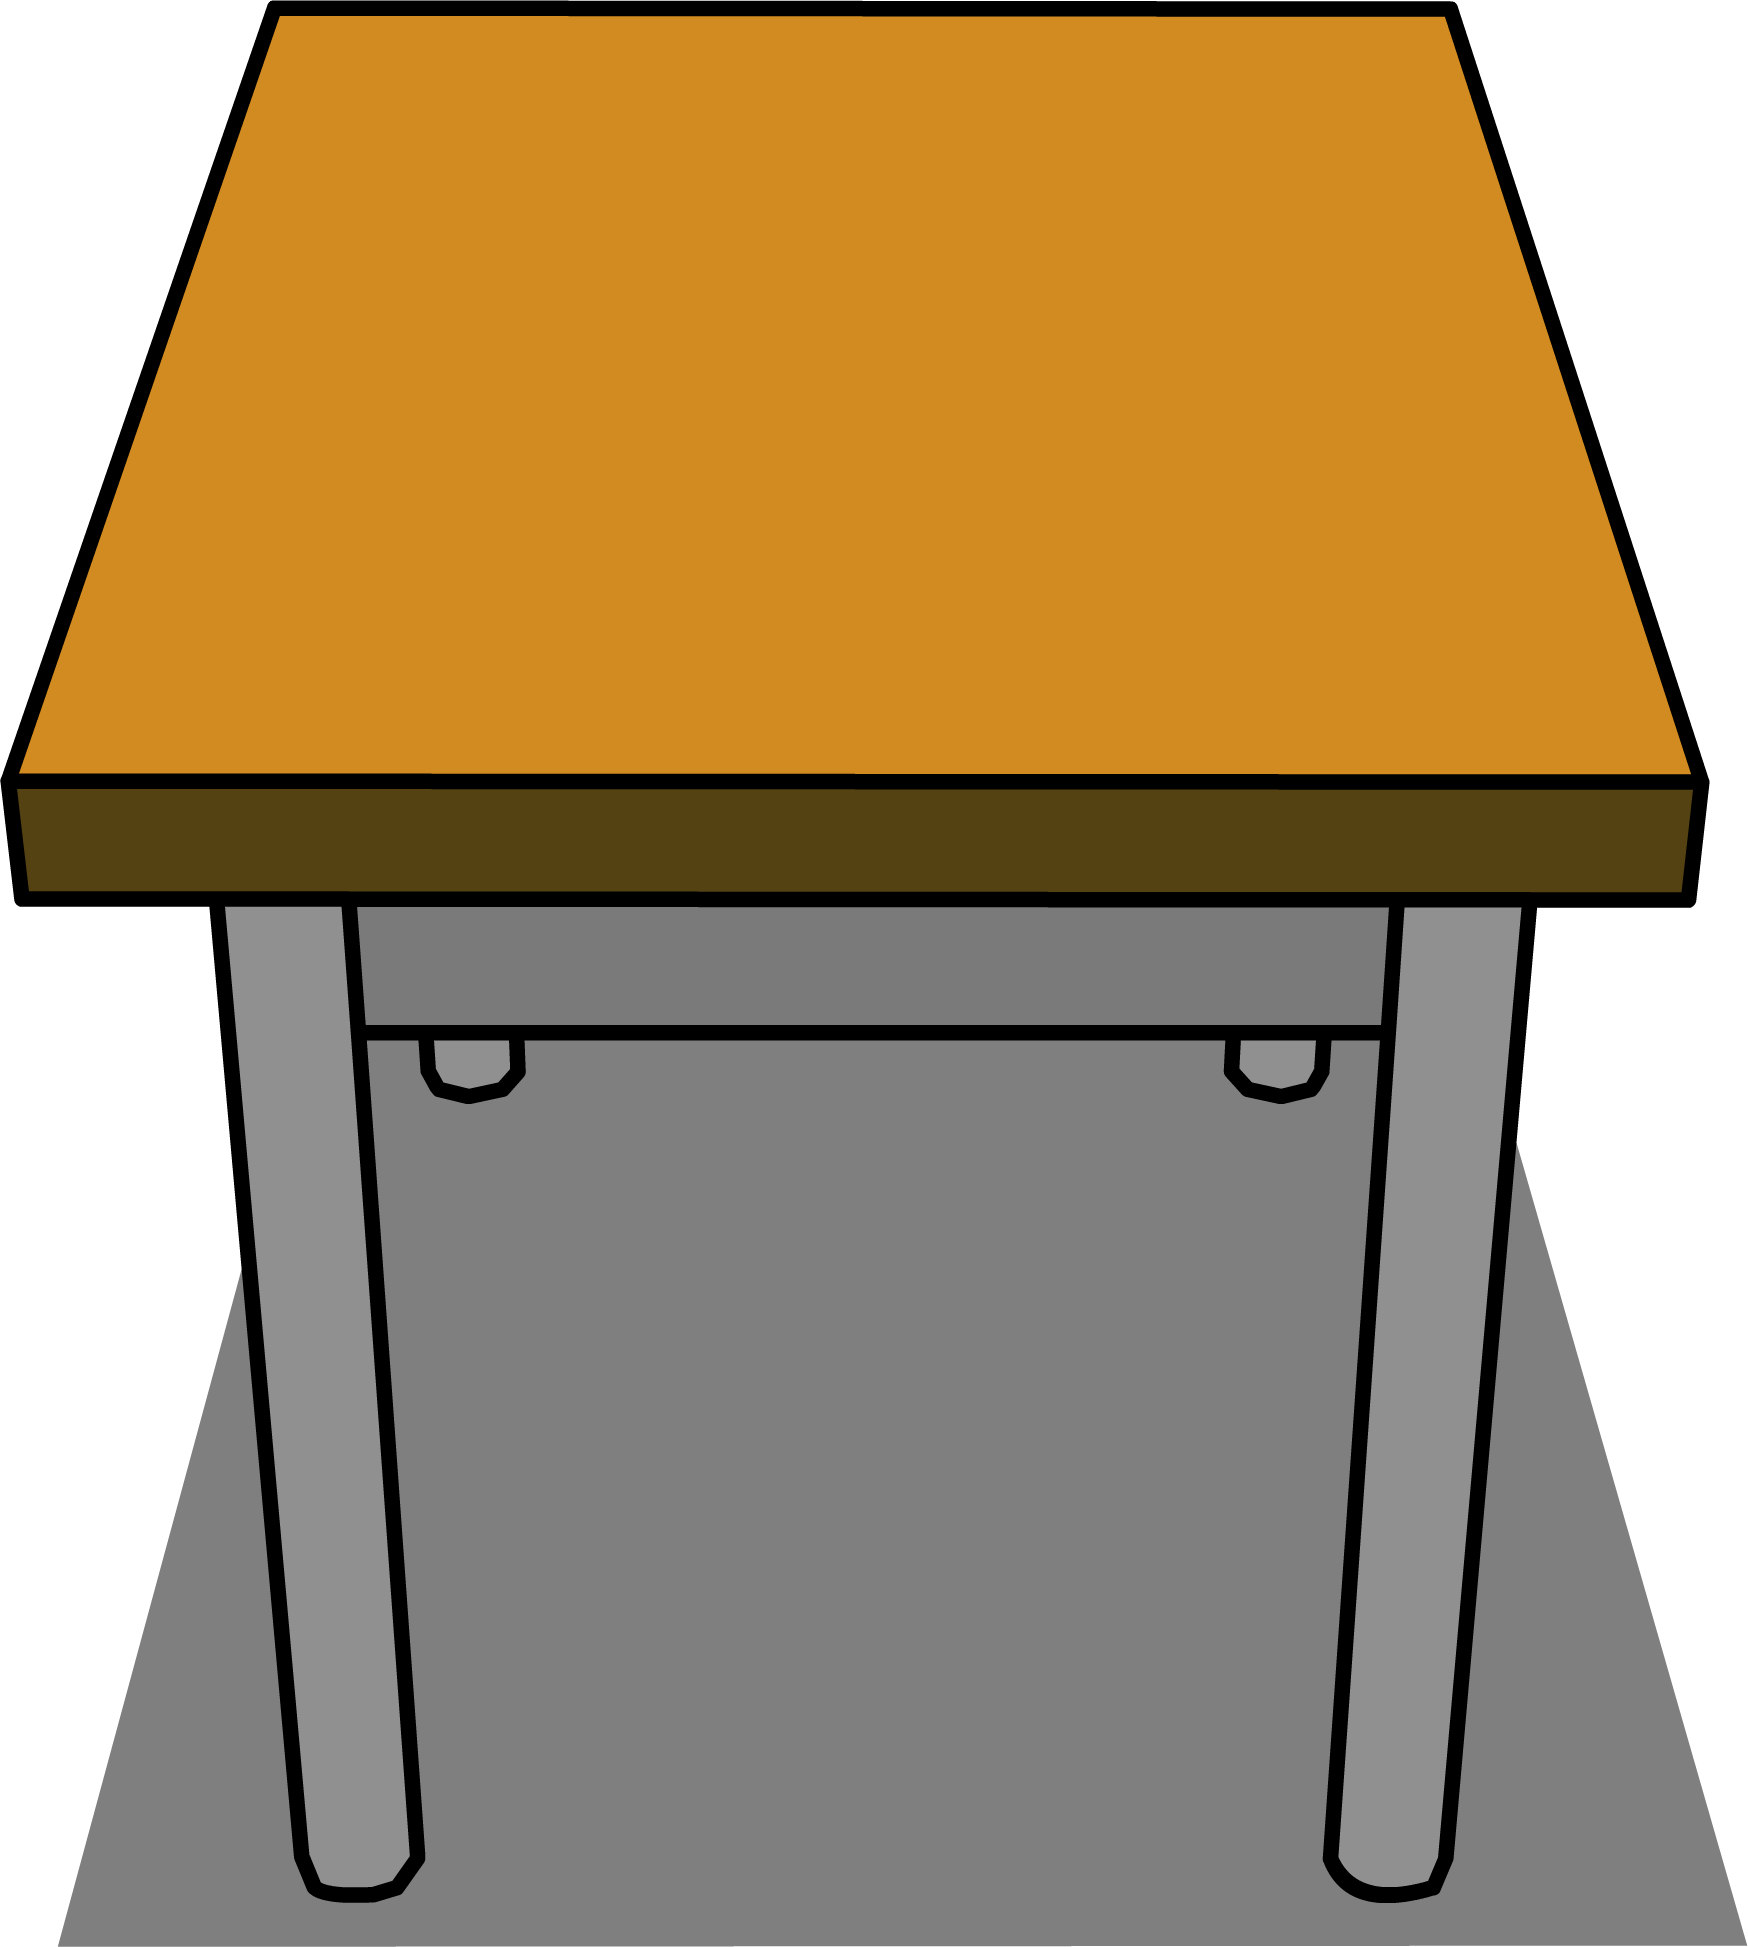 Desk clipart classroom full. Image sprite png club